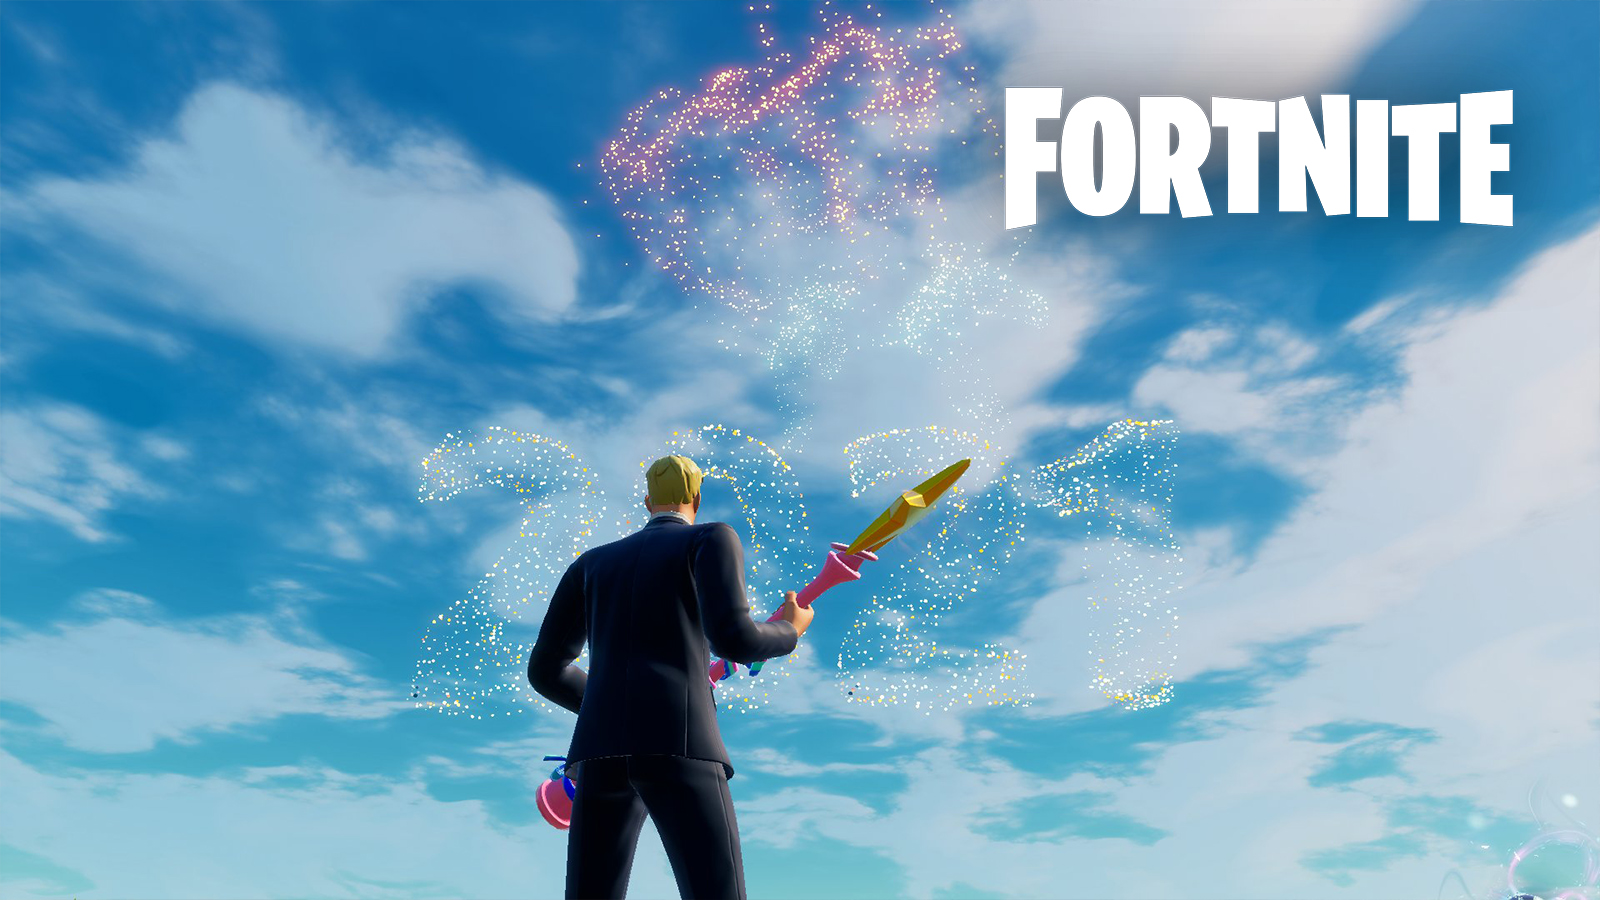 Fortnite's 2021 celebration with fireworks shooting off in the sky